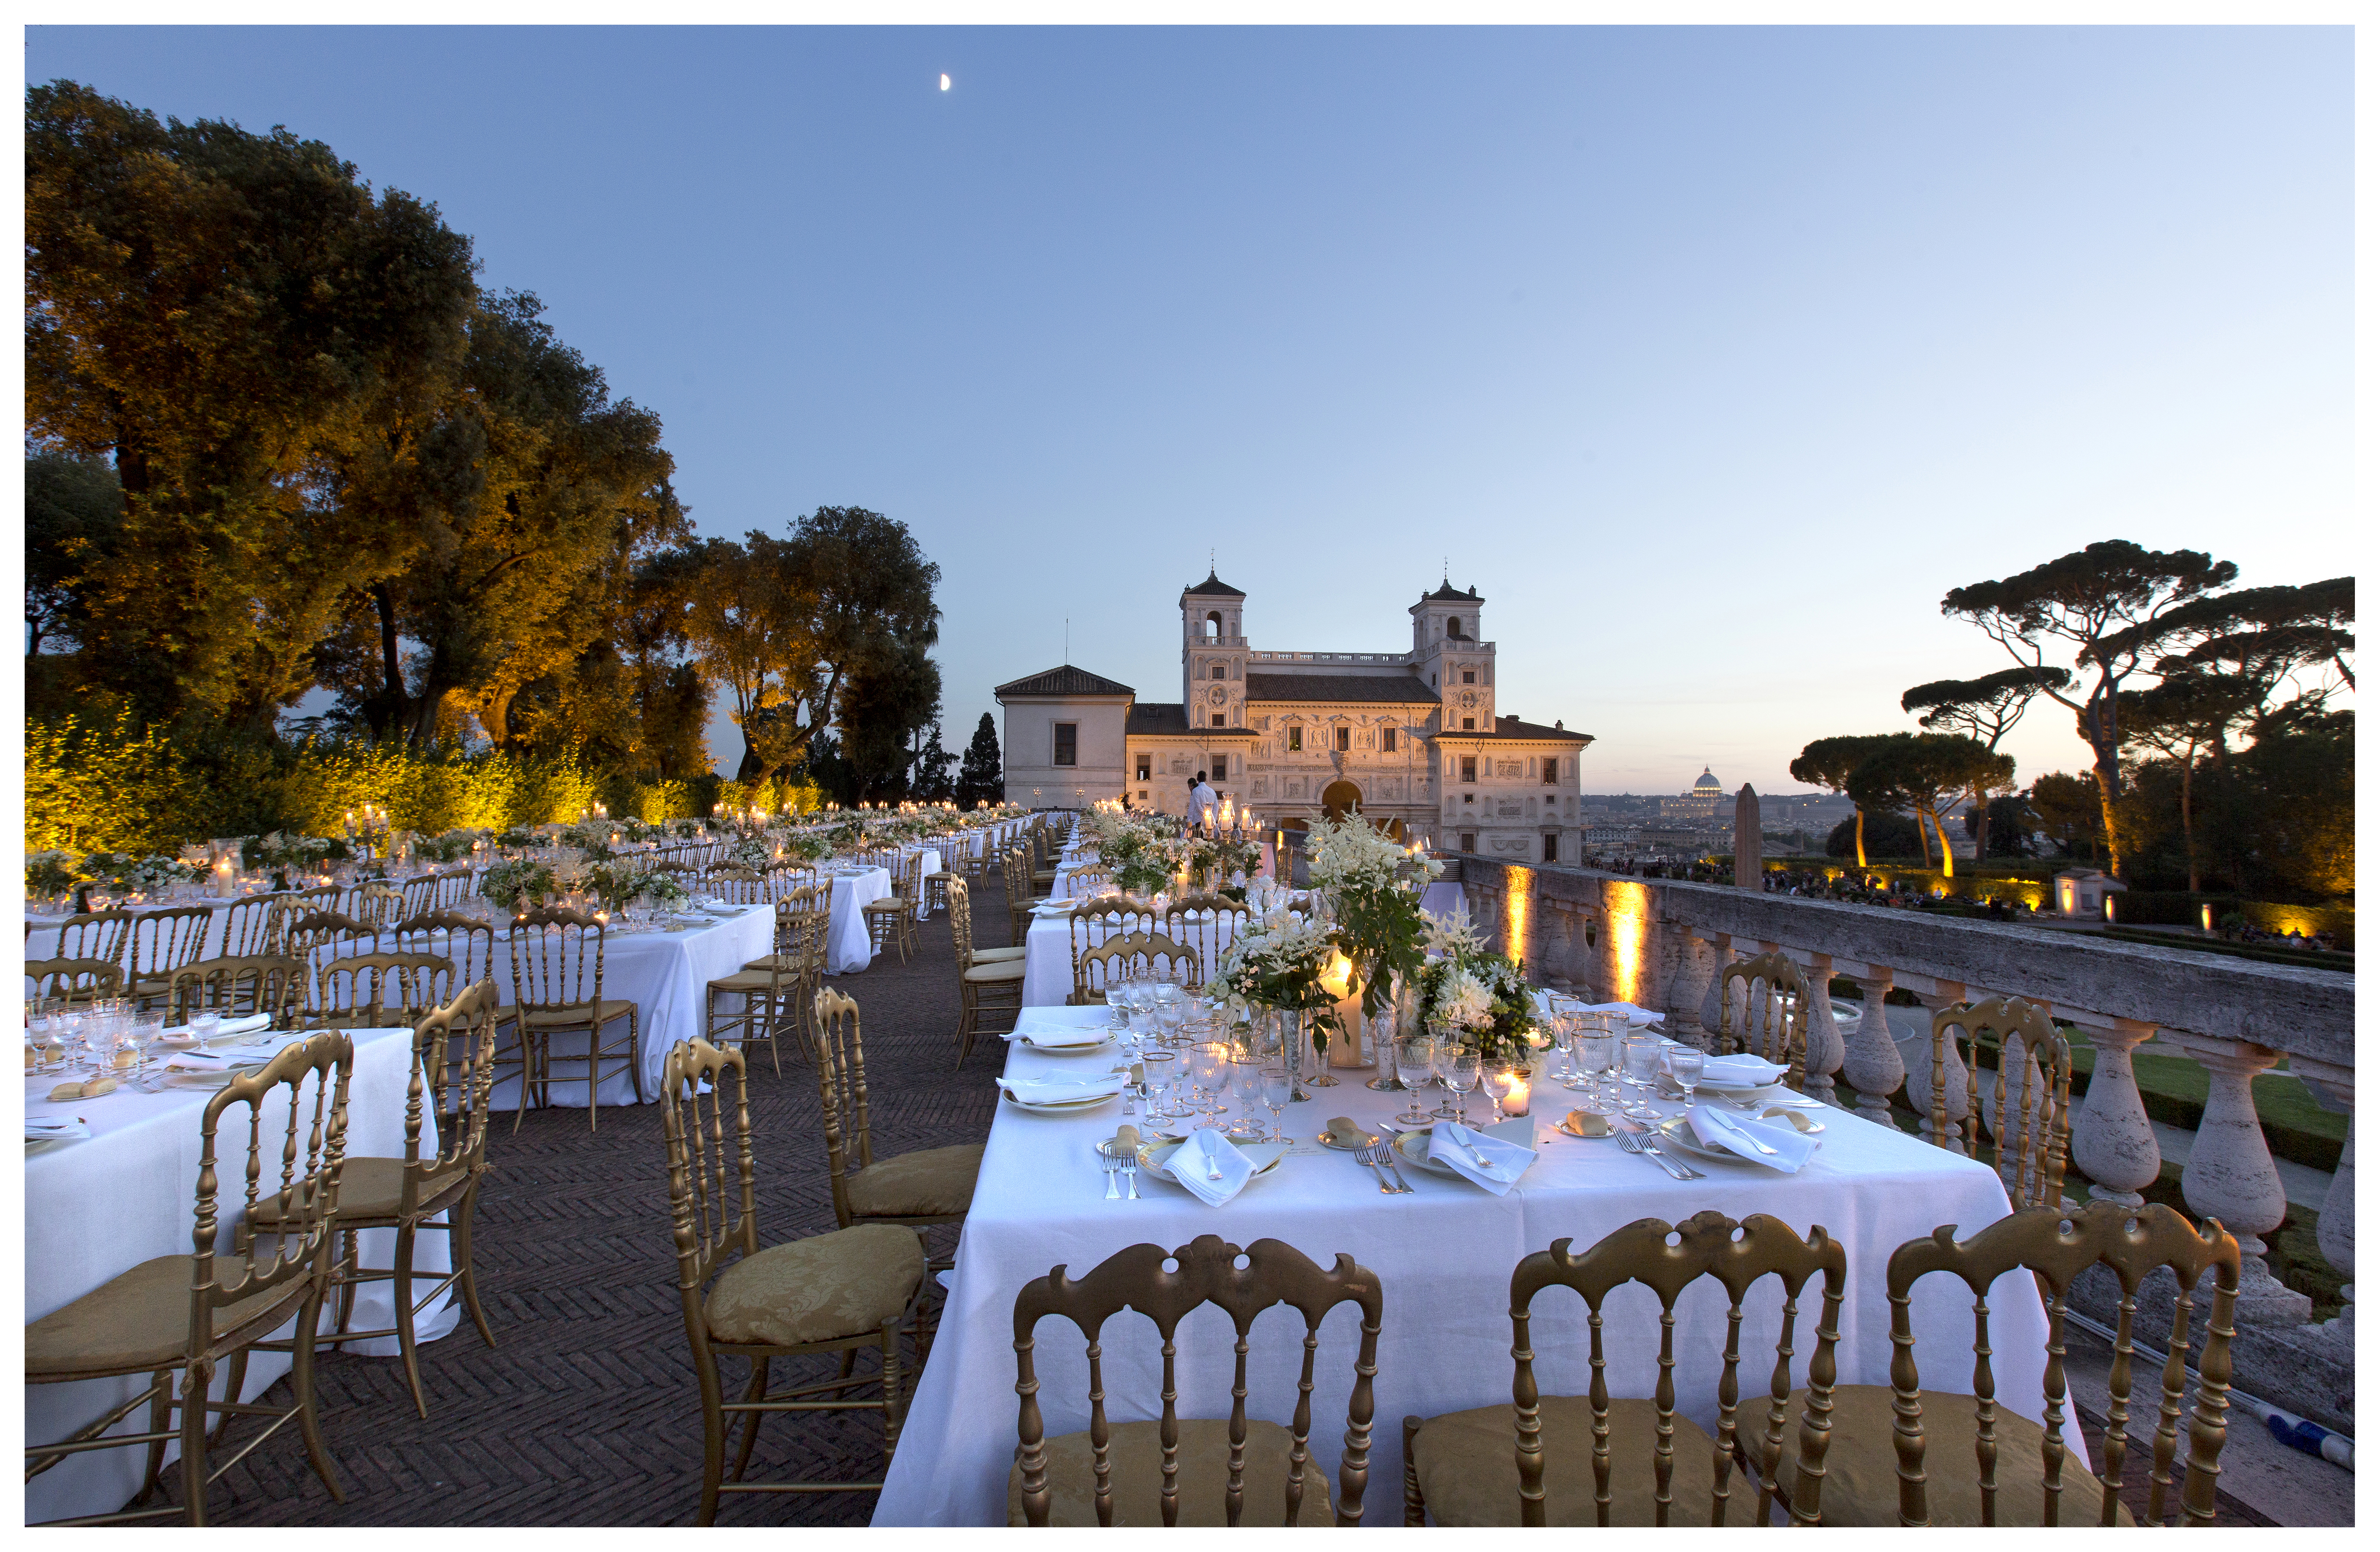 Private Events Villa Medici